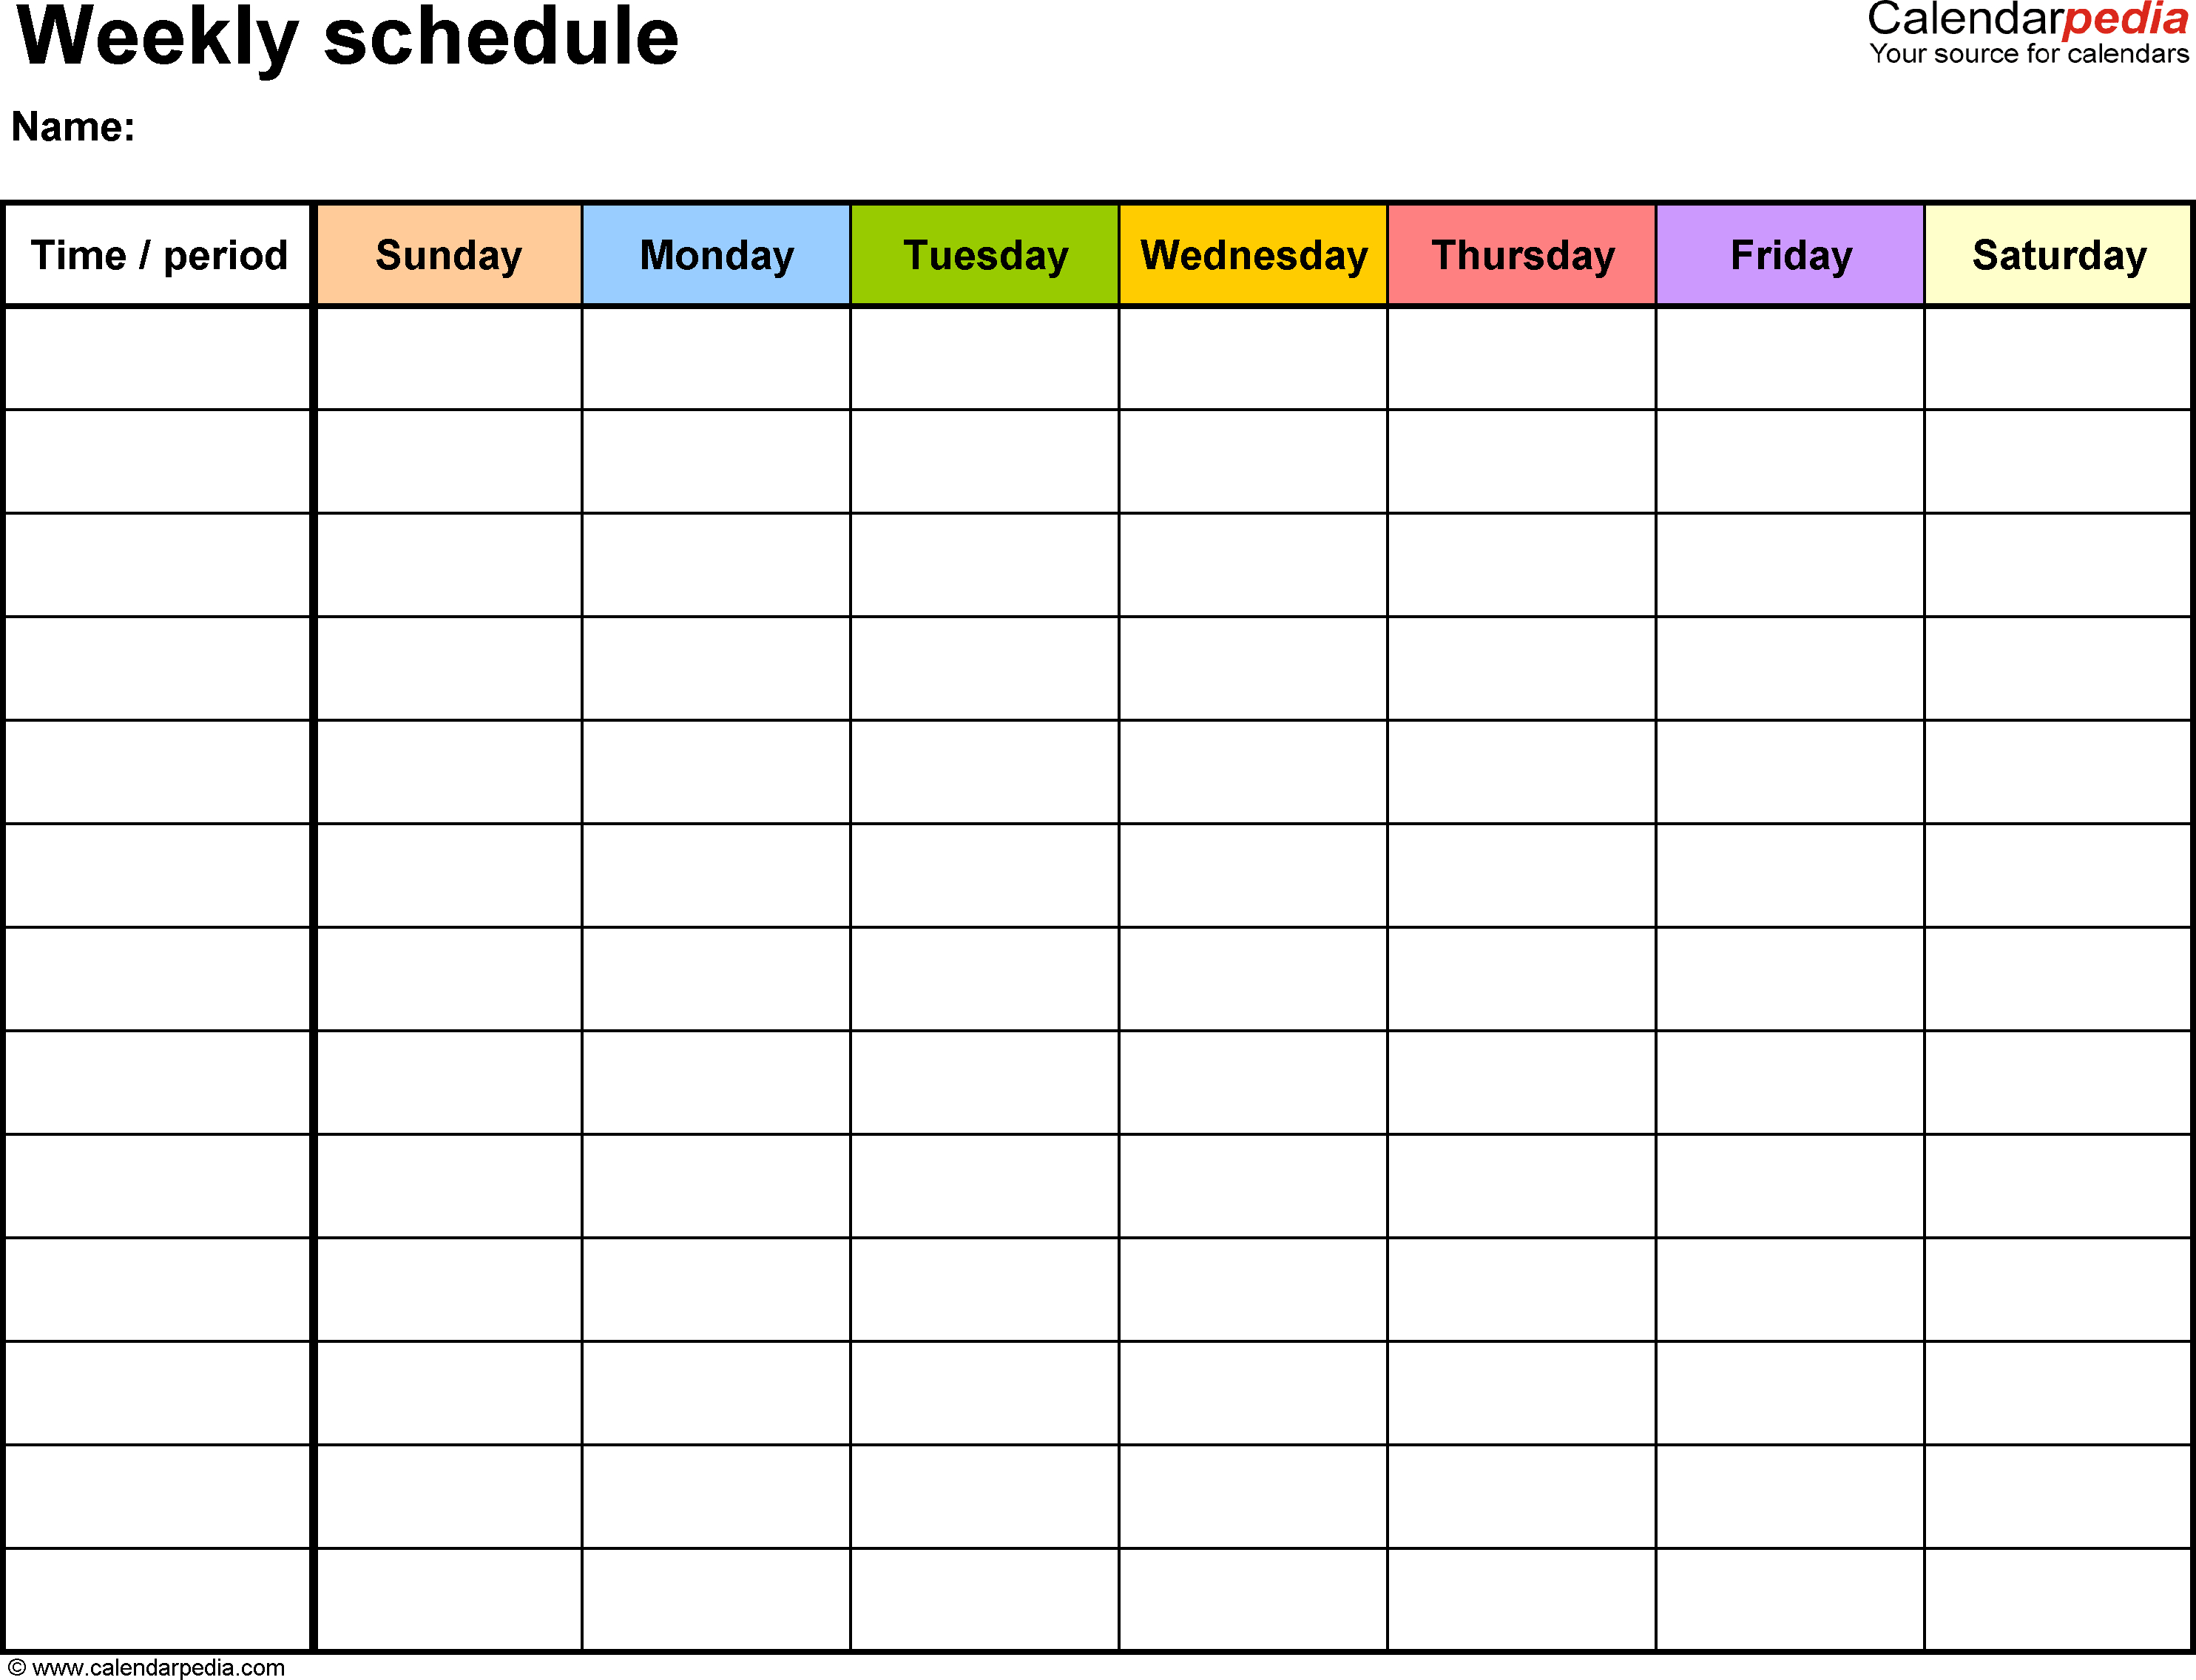 Schedule Template Weekly Calendar Editable Free Templates For Word inside Blank Schedule Template With Time Slots